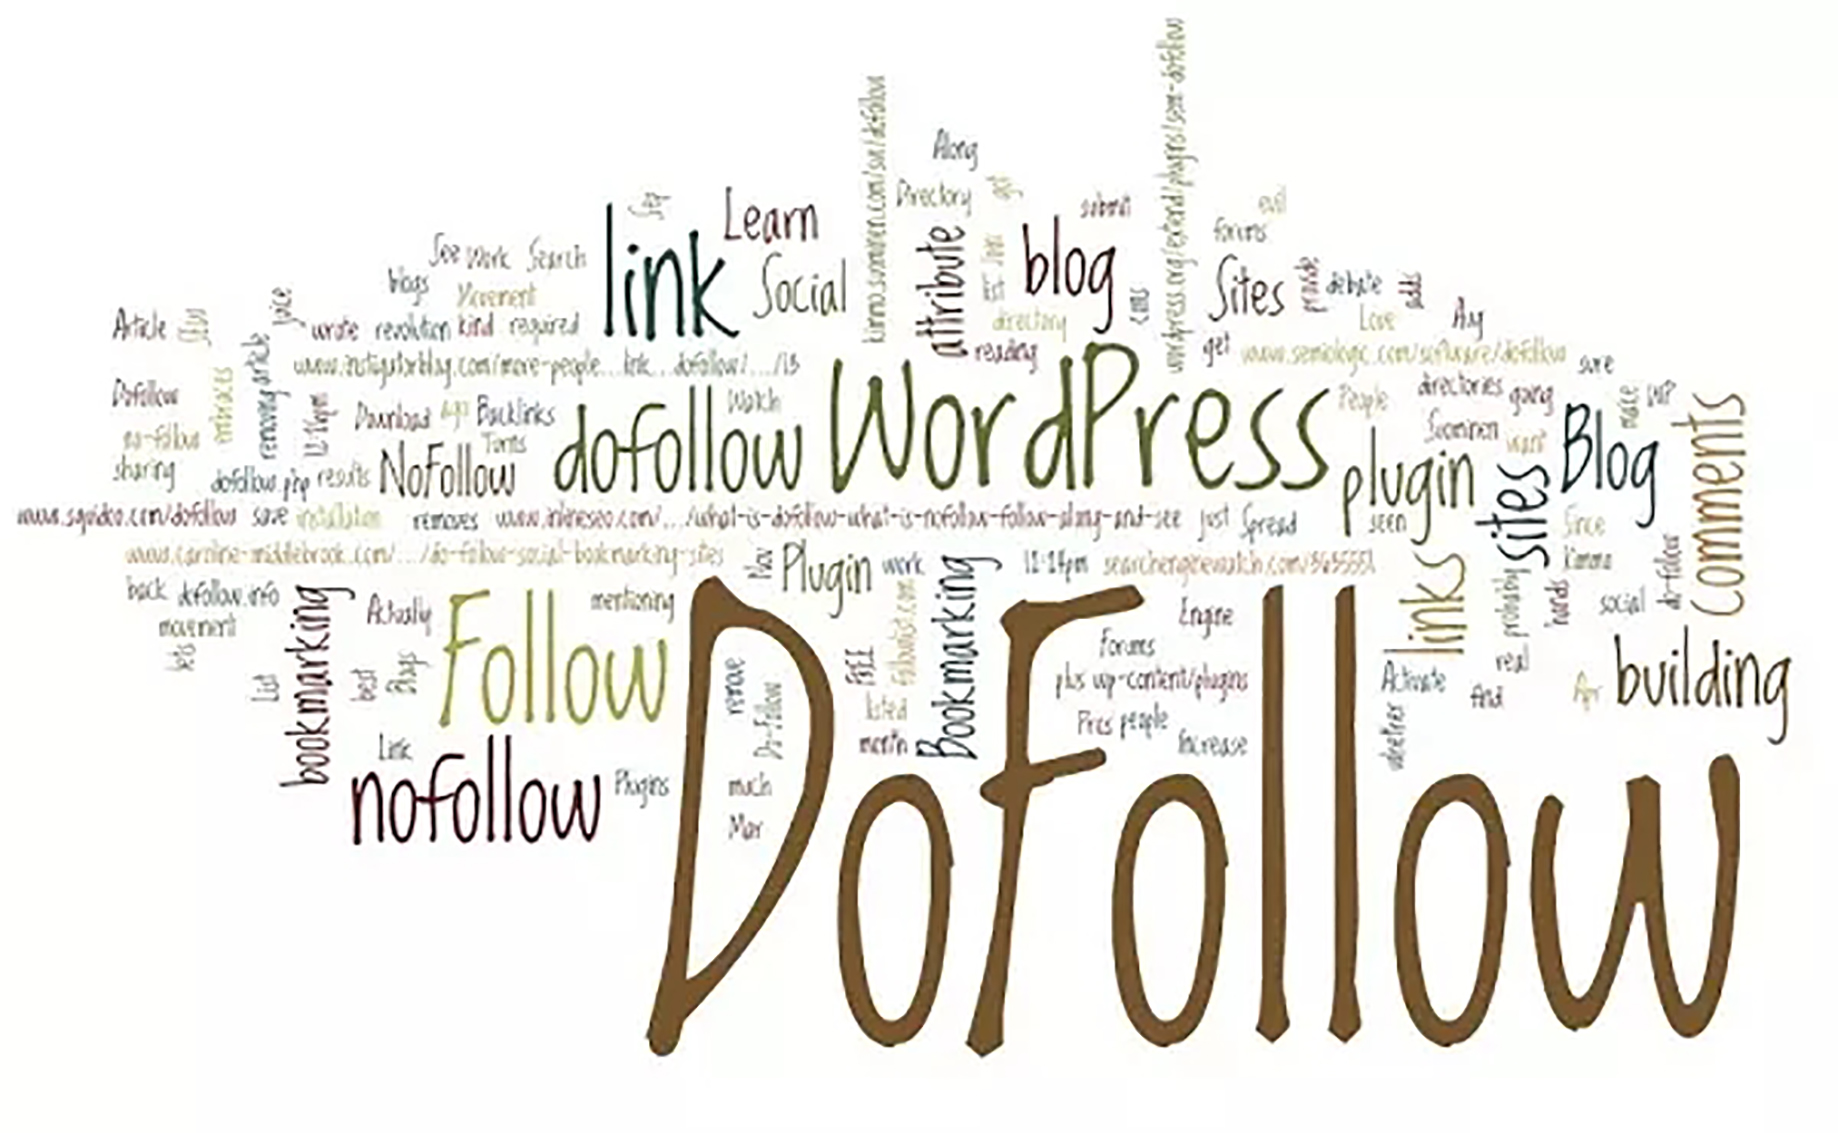 I Will MANUALLY Make 300 Dofollow Blog Comment Backlinks On Unique Domains With High TF, CF, DA, PA